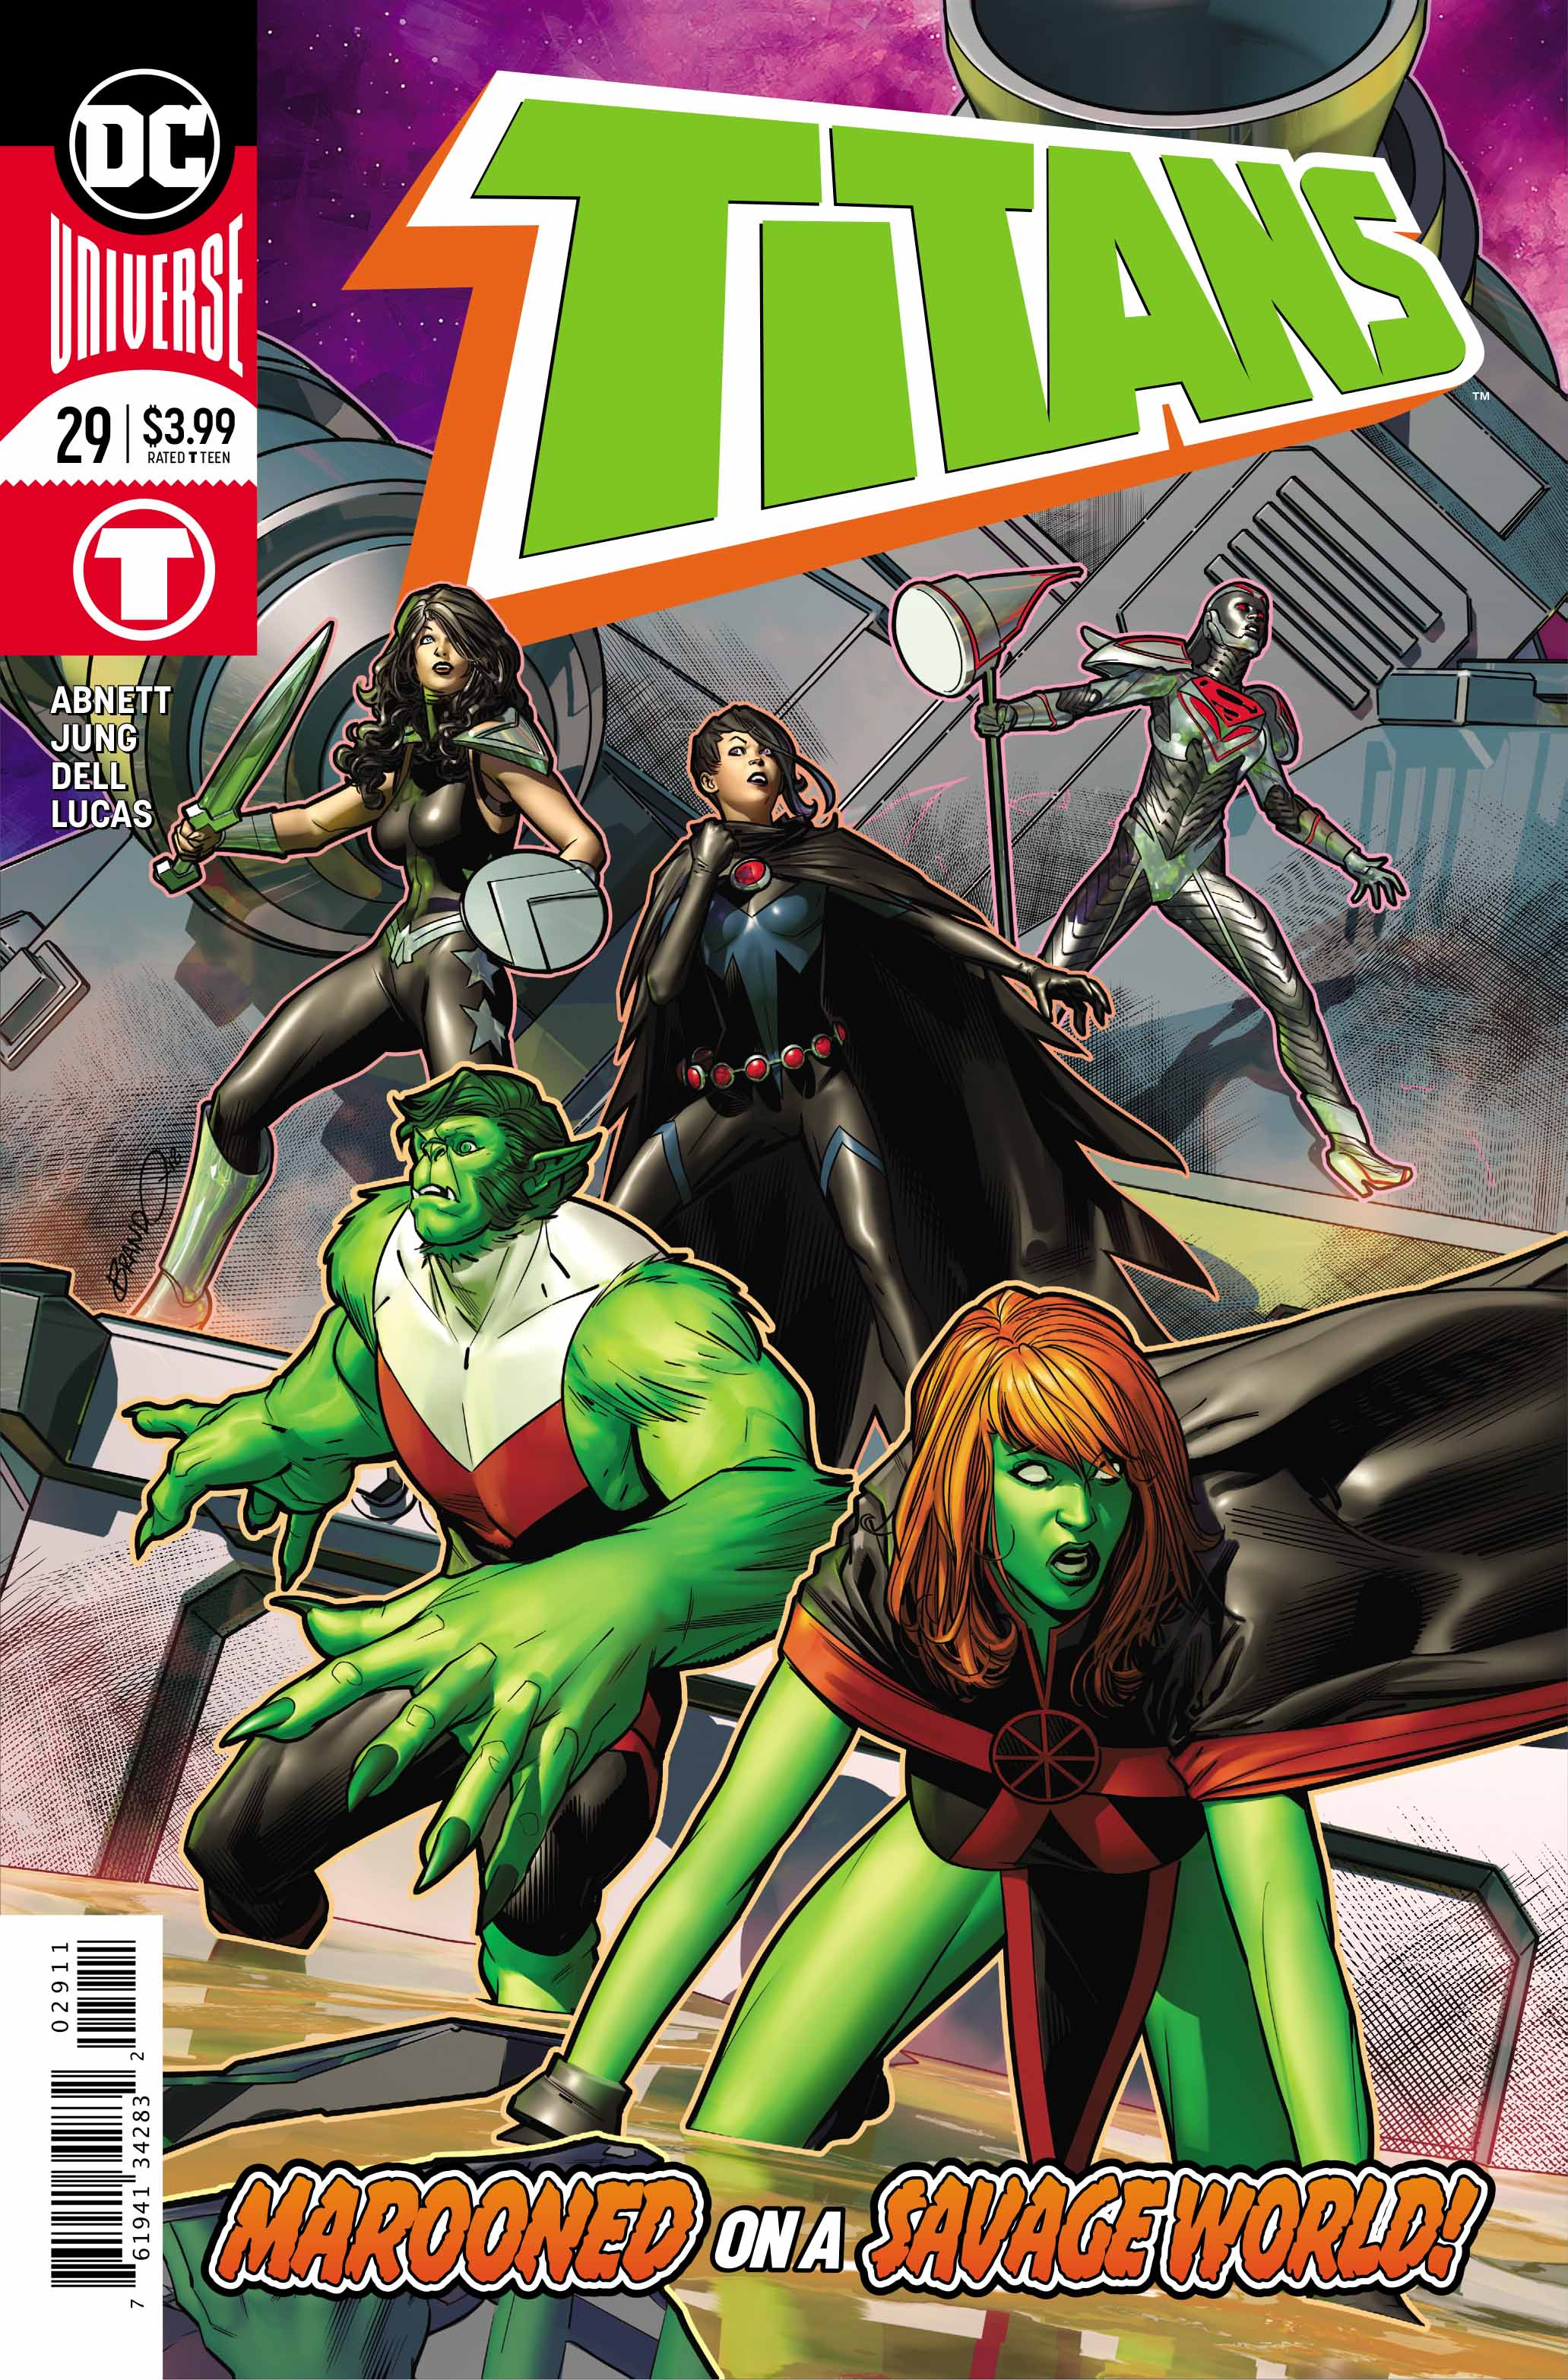 Comic Review: TITANS #29 Marooned Part 1